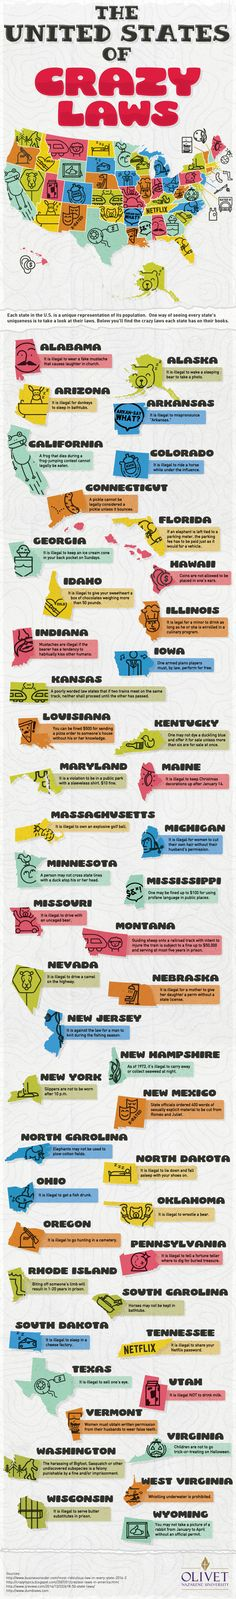 Enjoyably oddball infographic showing the wide range of bizarre laws still on the statute books in each US state…